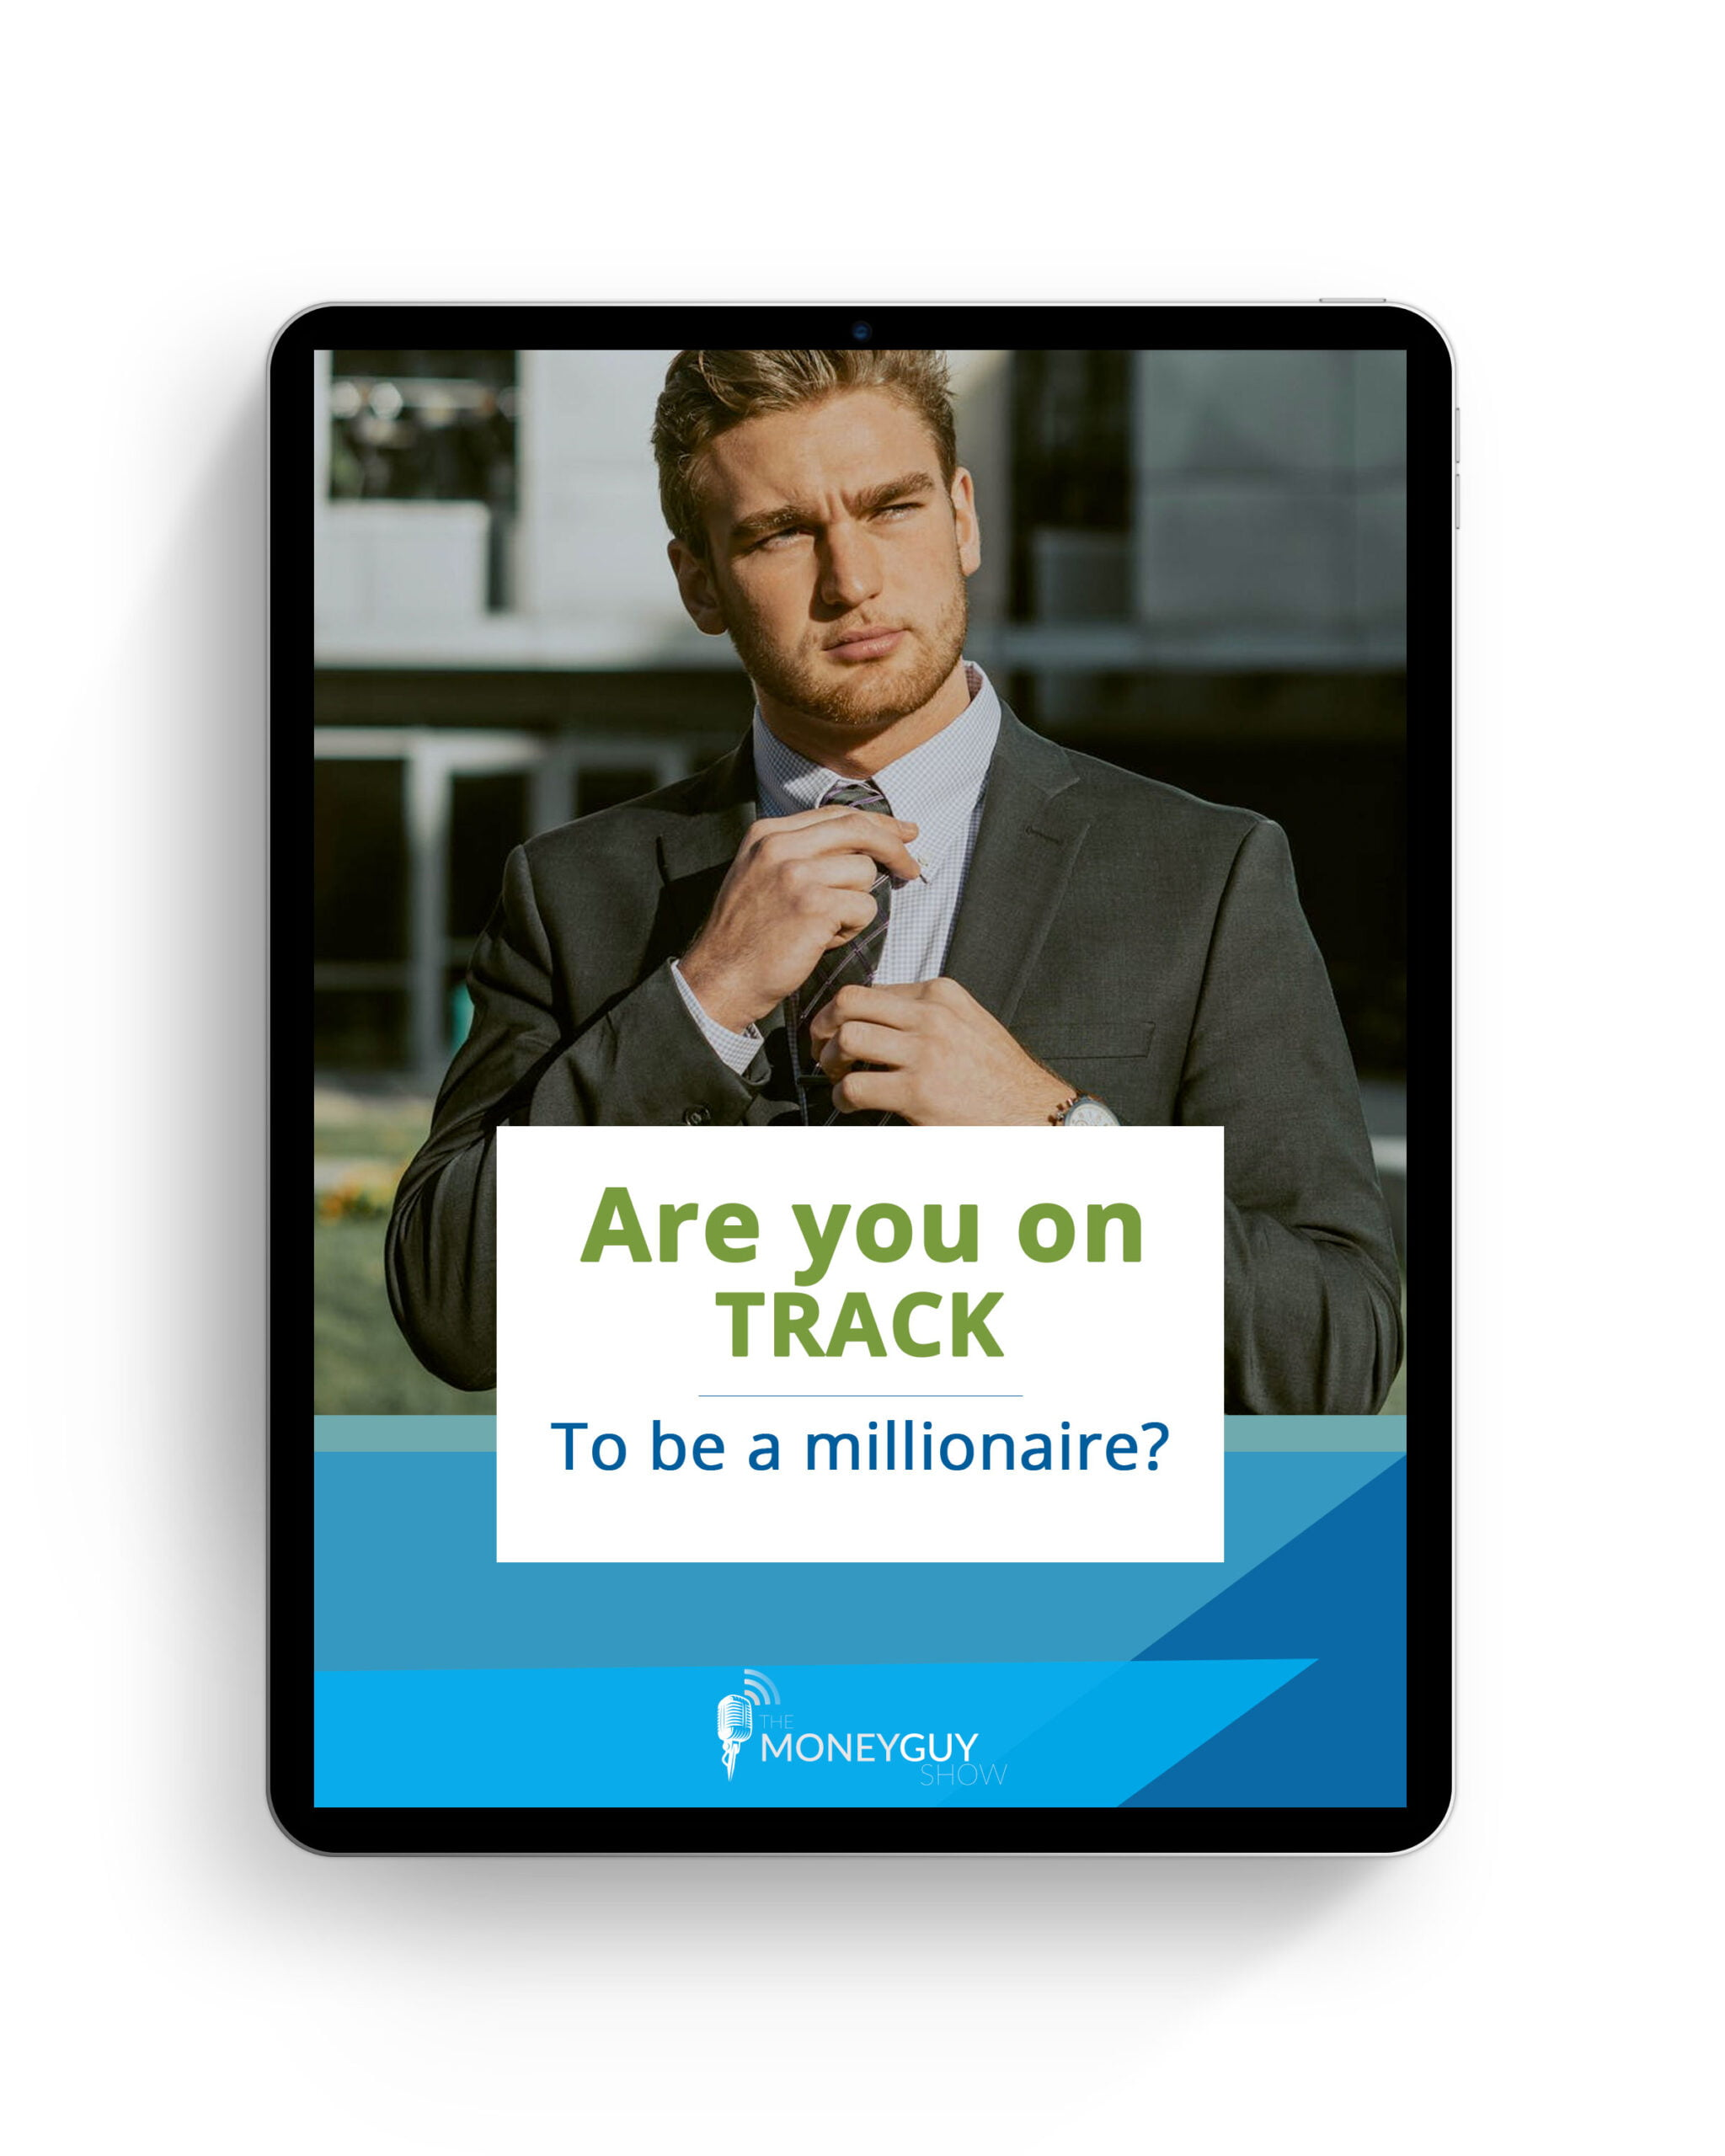 2021-04-16-Are-You-on-Track-to-Be-a-Millionaire